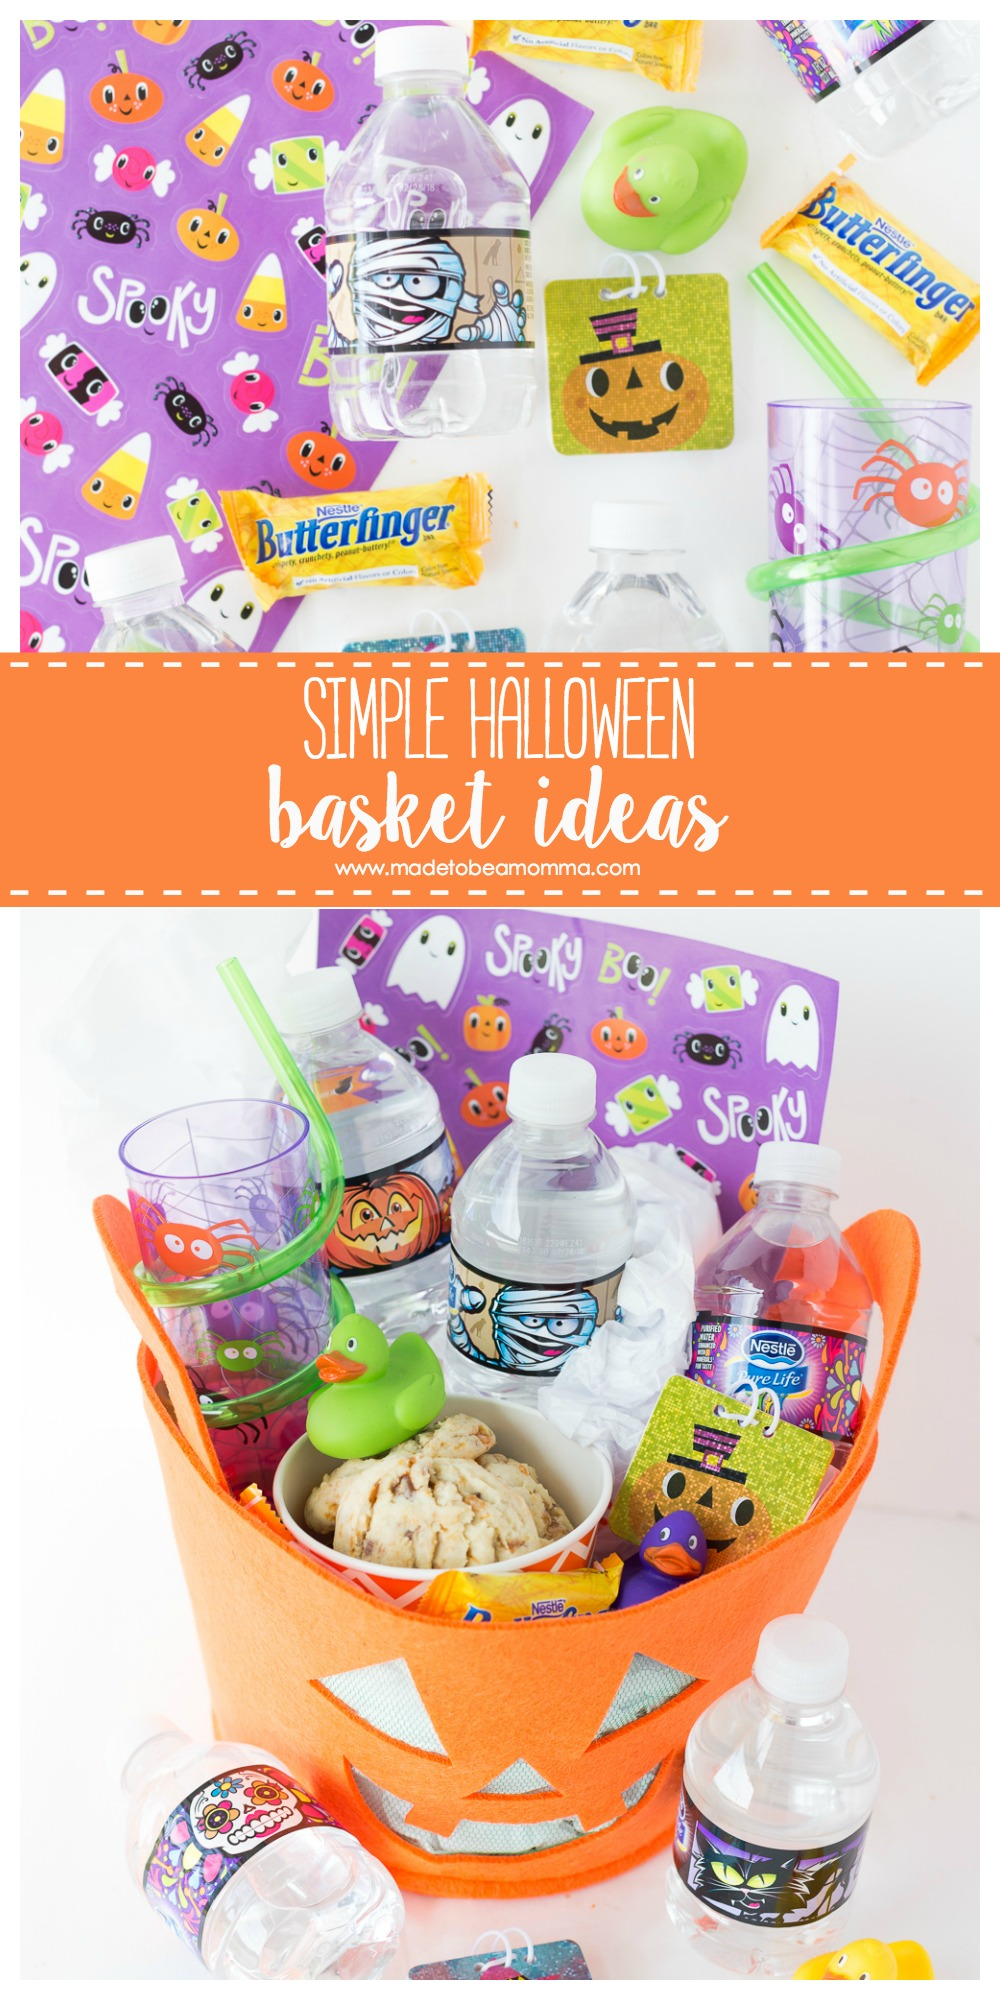 Simple Halloween Basket Ideas: www.madetobeamomma.com